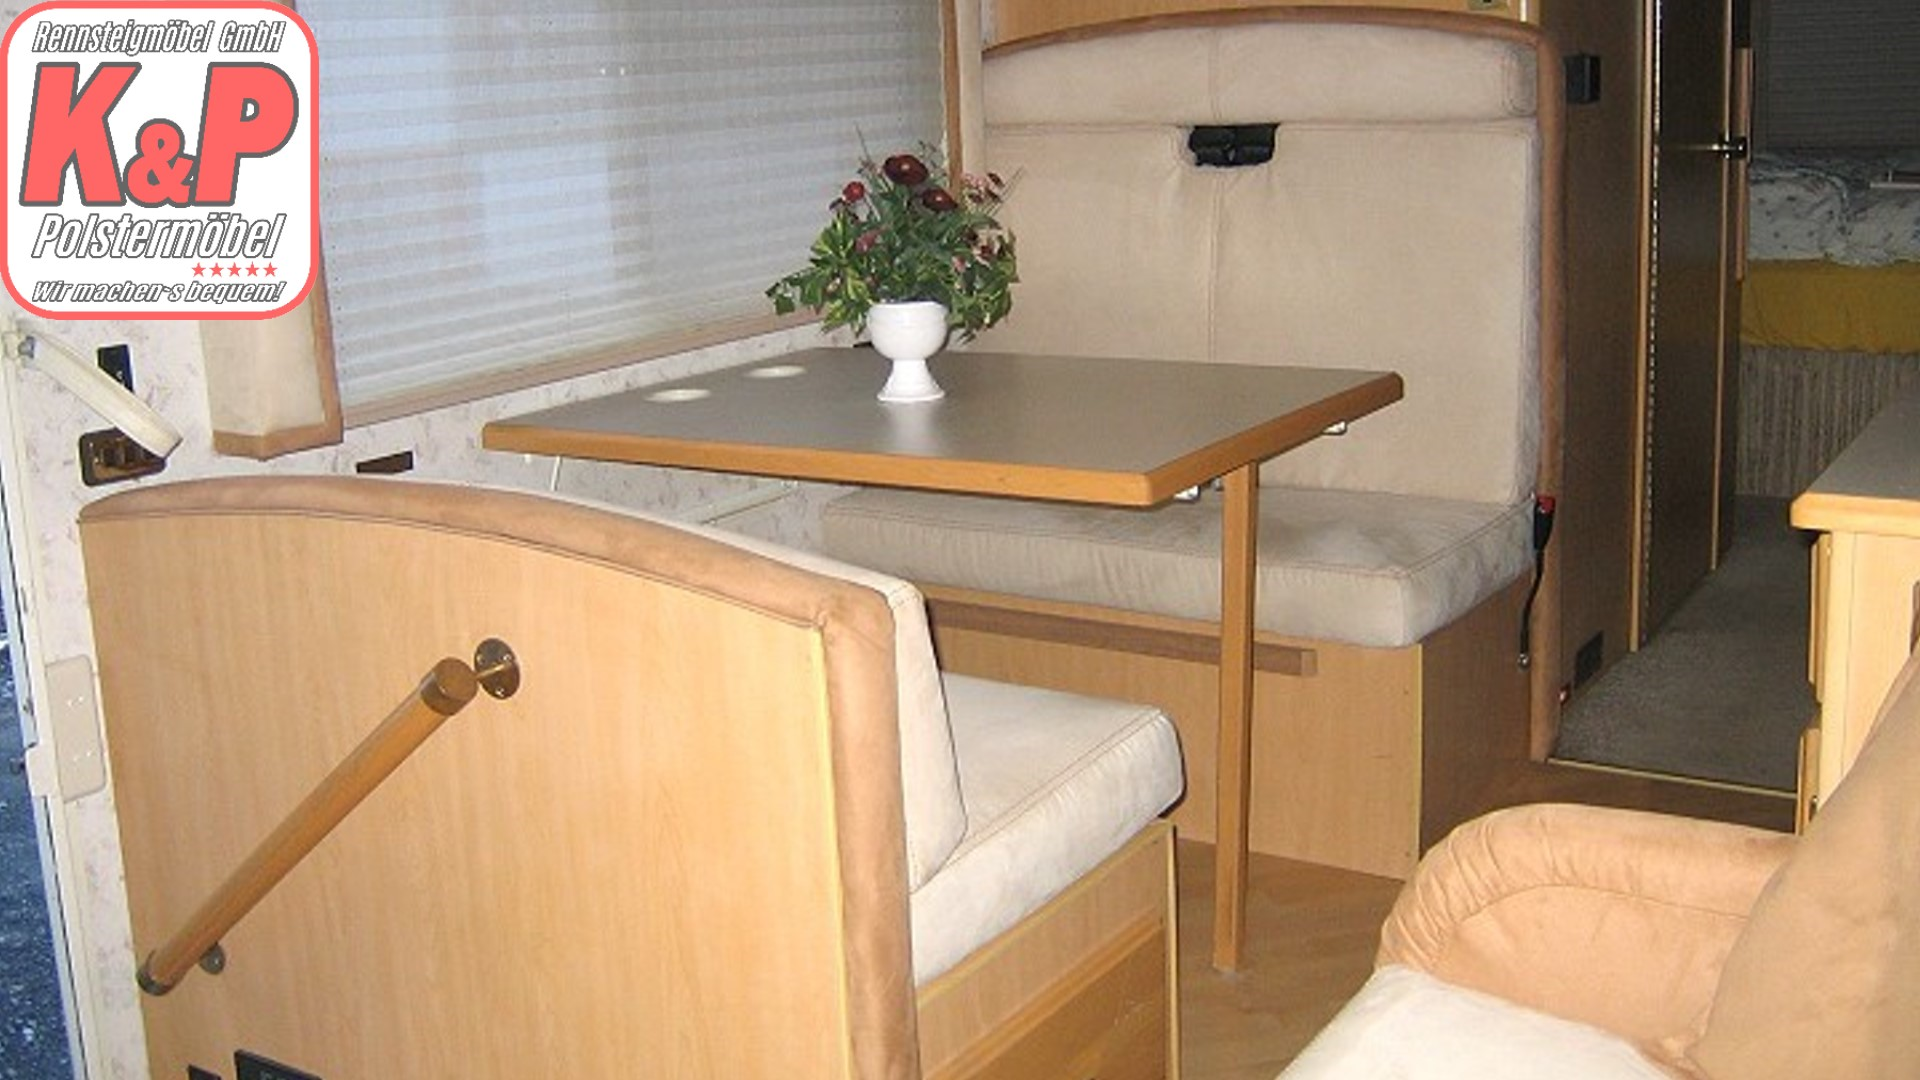 polsterm bel bootpolster polster f r caravan. Black Bedroom Furniture Sets. Home Design Ideas